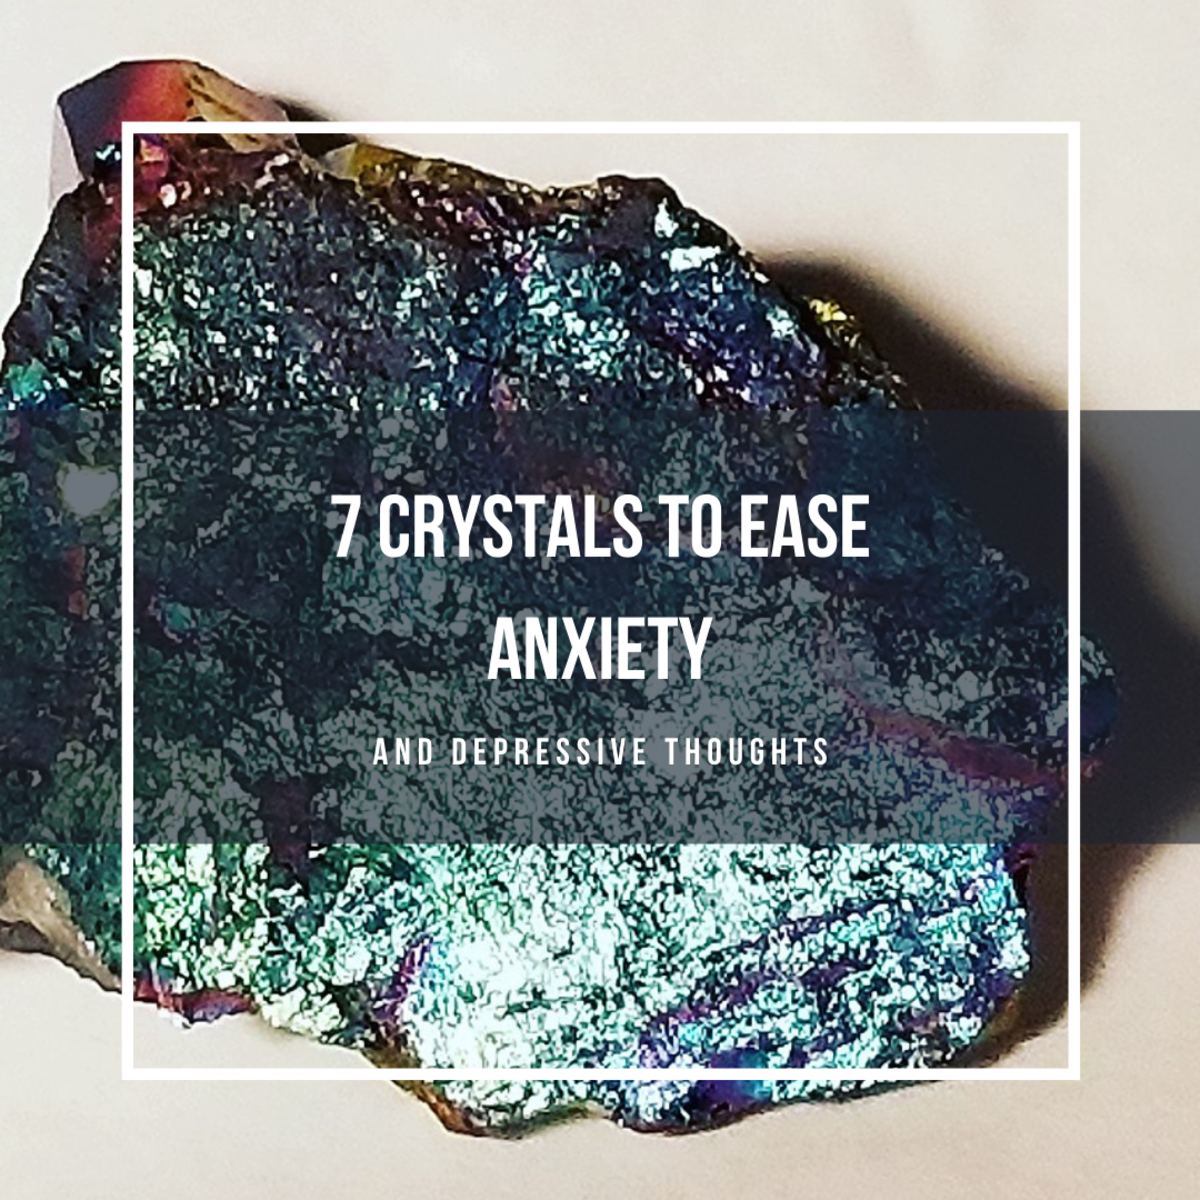 Bornite can alleviate some anxious feelings.